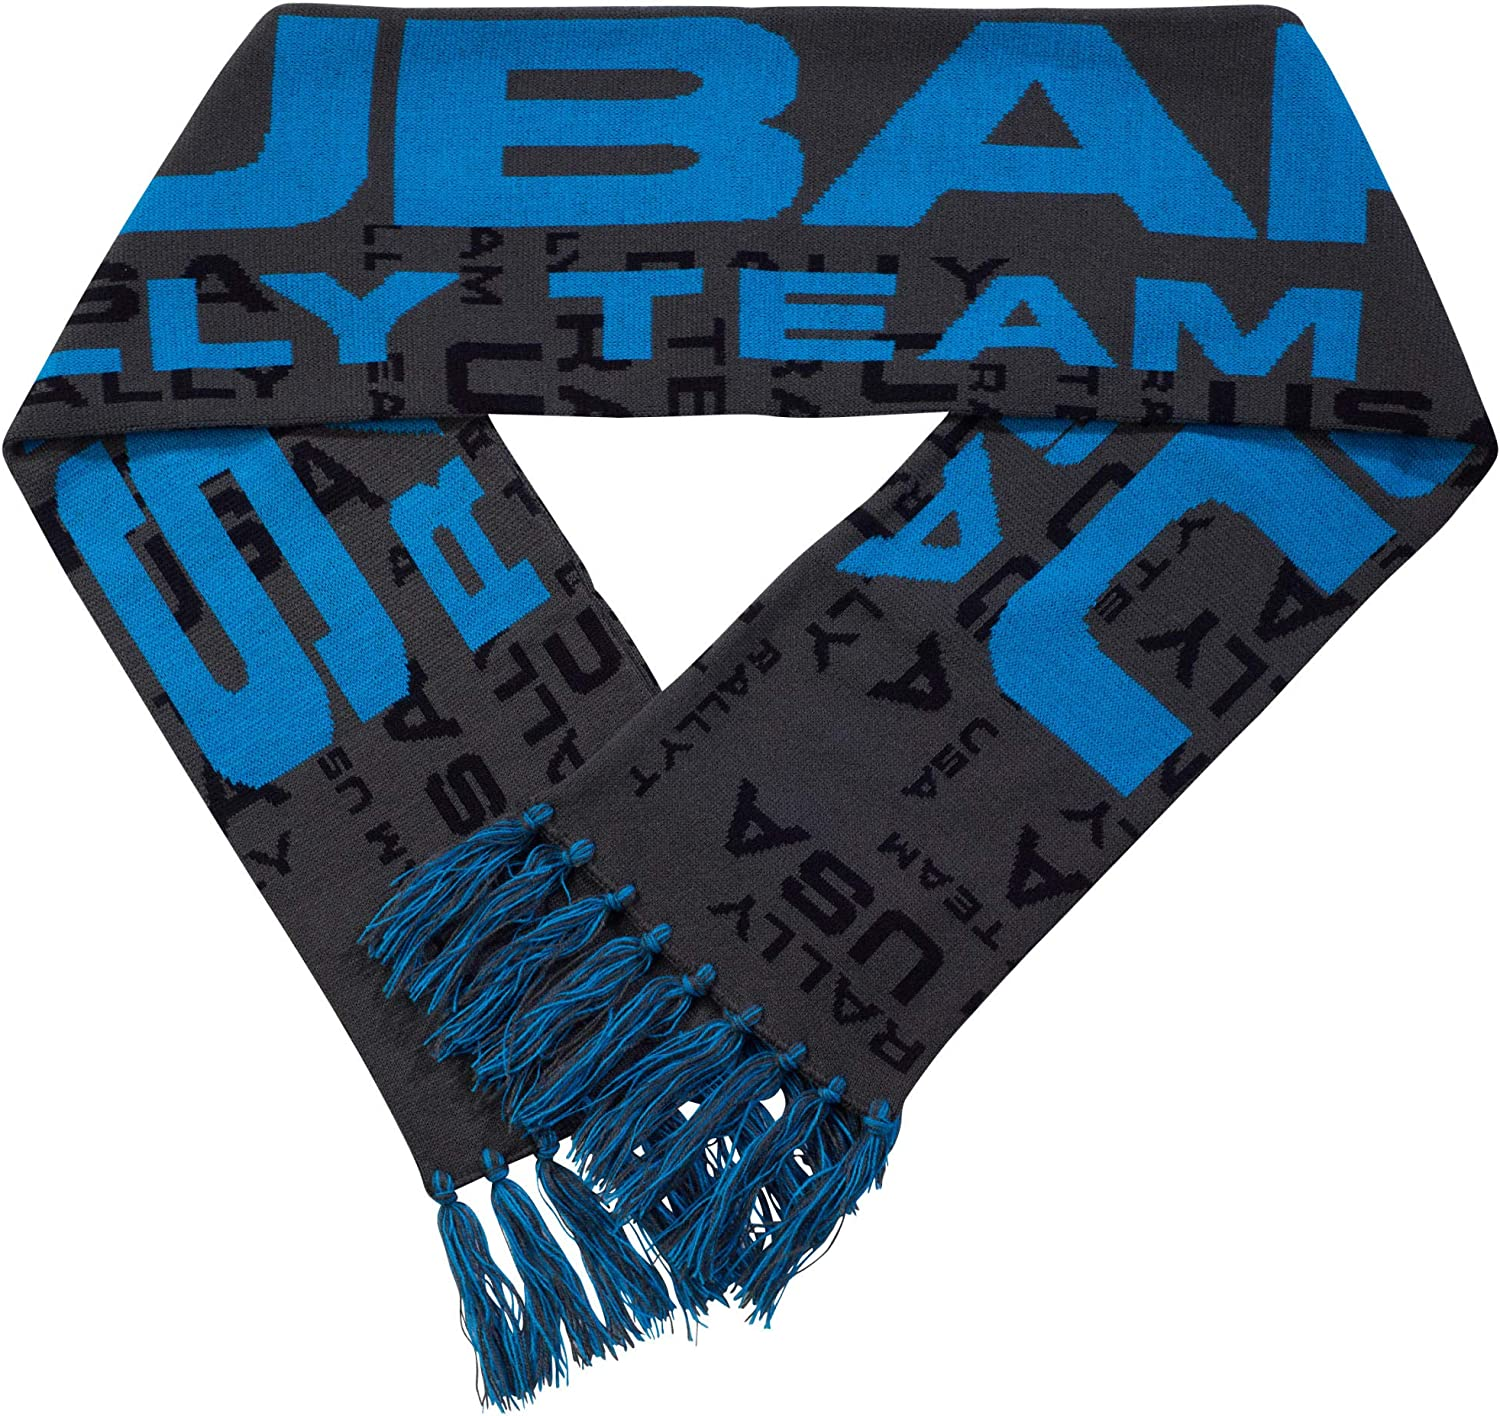 Shipping included SUBARU Official Rally Team Seattle Mall USA Fringe Impre Racing Sti Scarf WRX